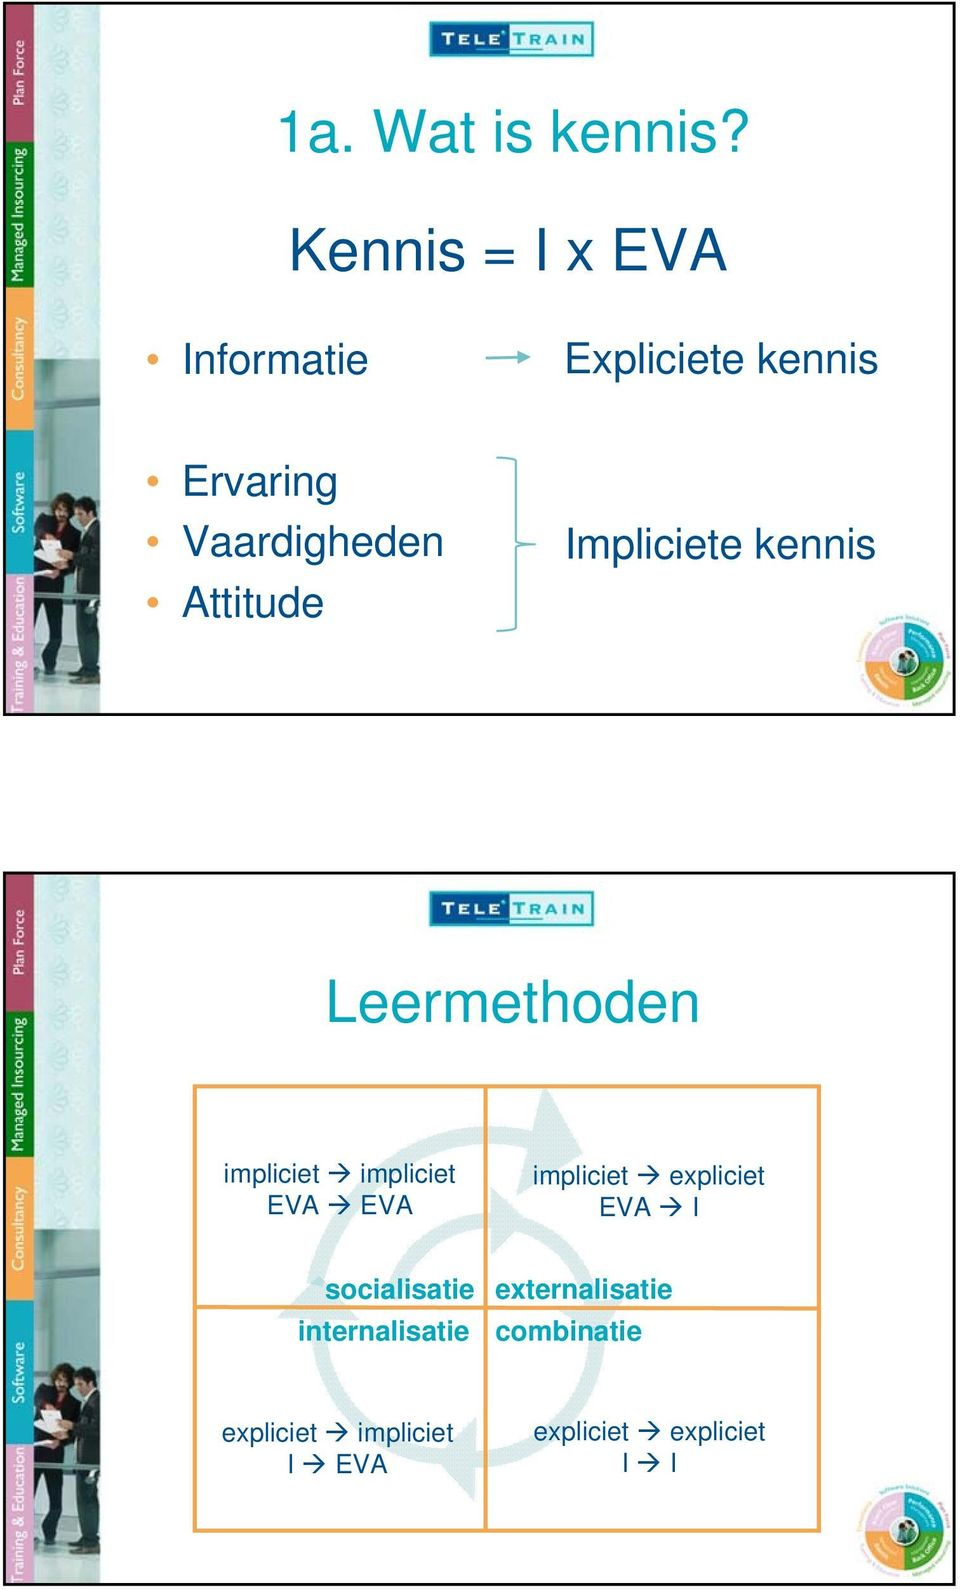 Attitude Impliciete kennis Leermethoden impliciet impliciet EVA EVA